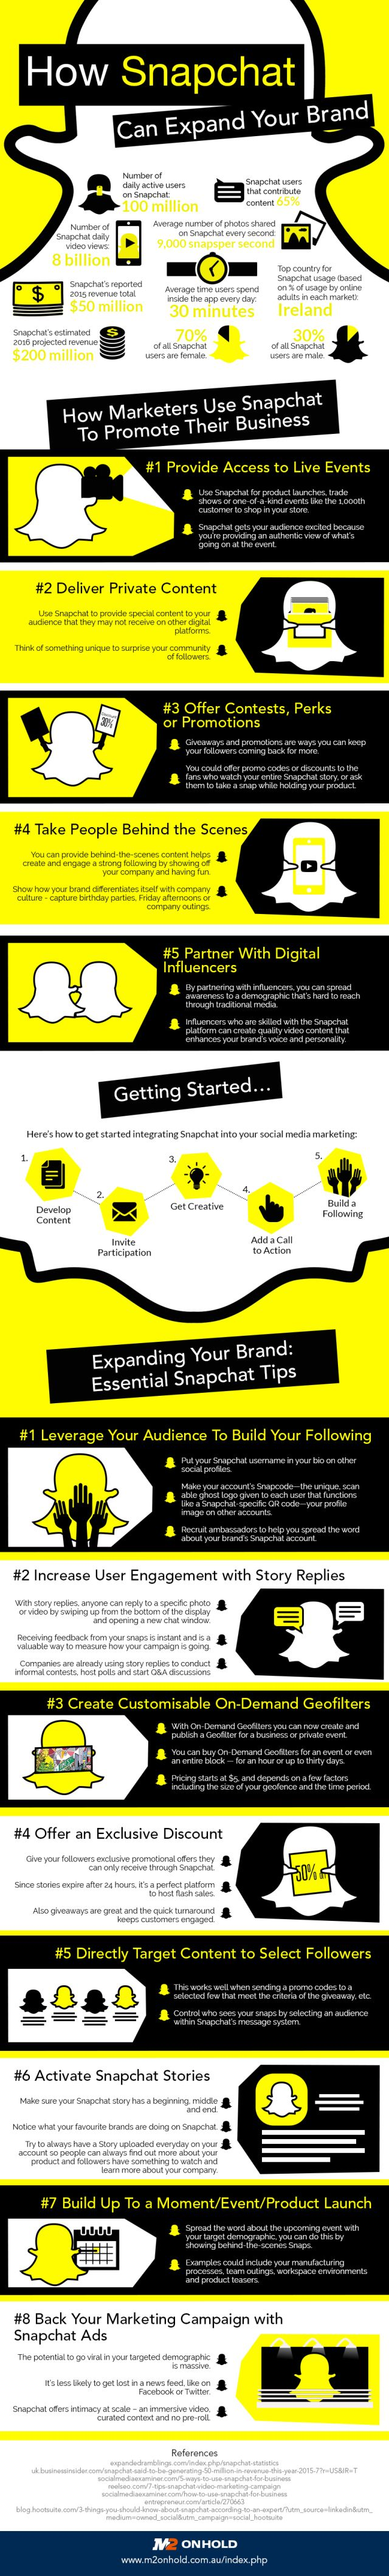 13 tips to promote your business using Snapchat